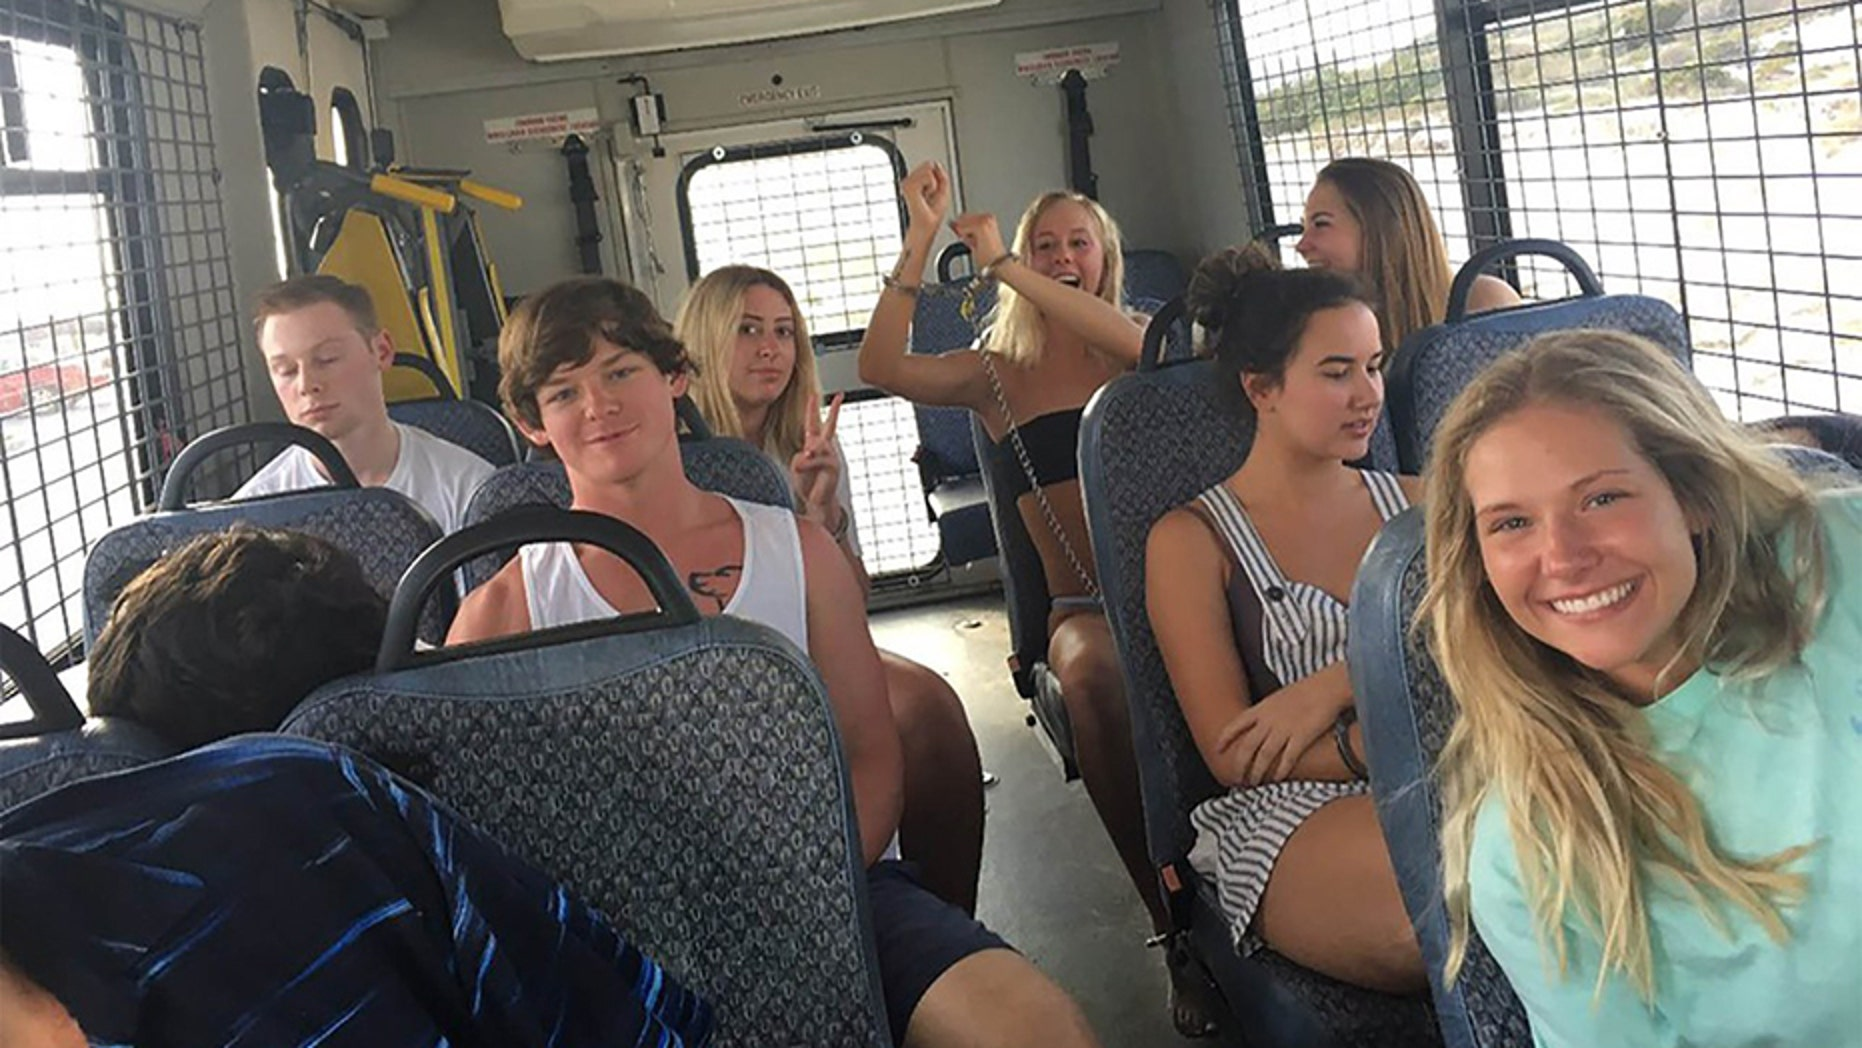 A bus full of 14 underage drinkers posed for the camera on their way to jail.